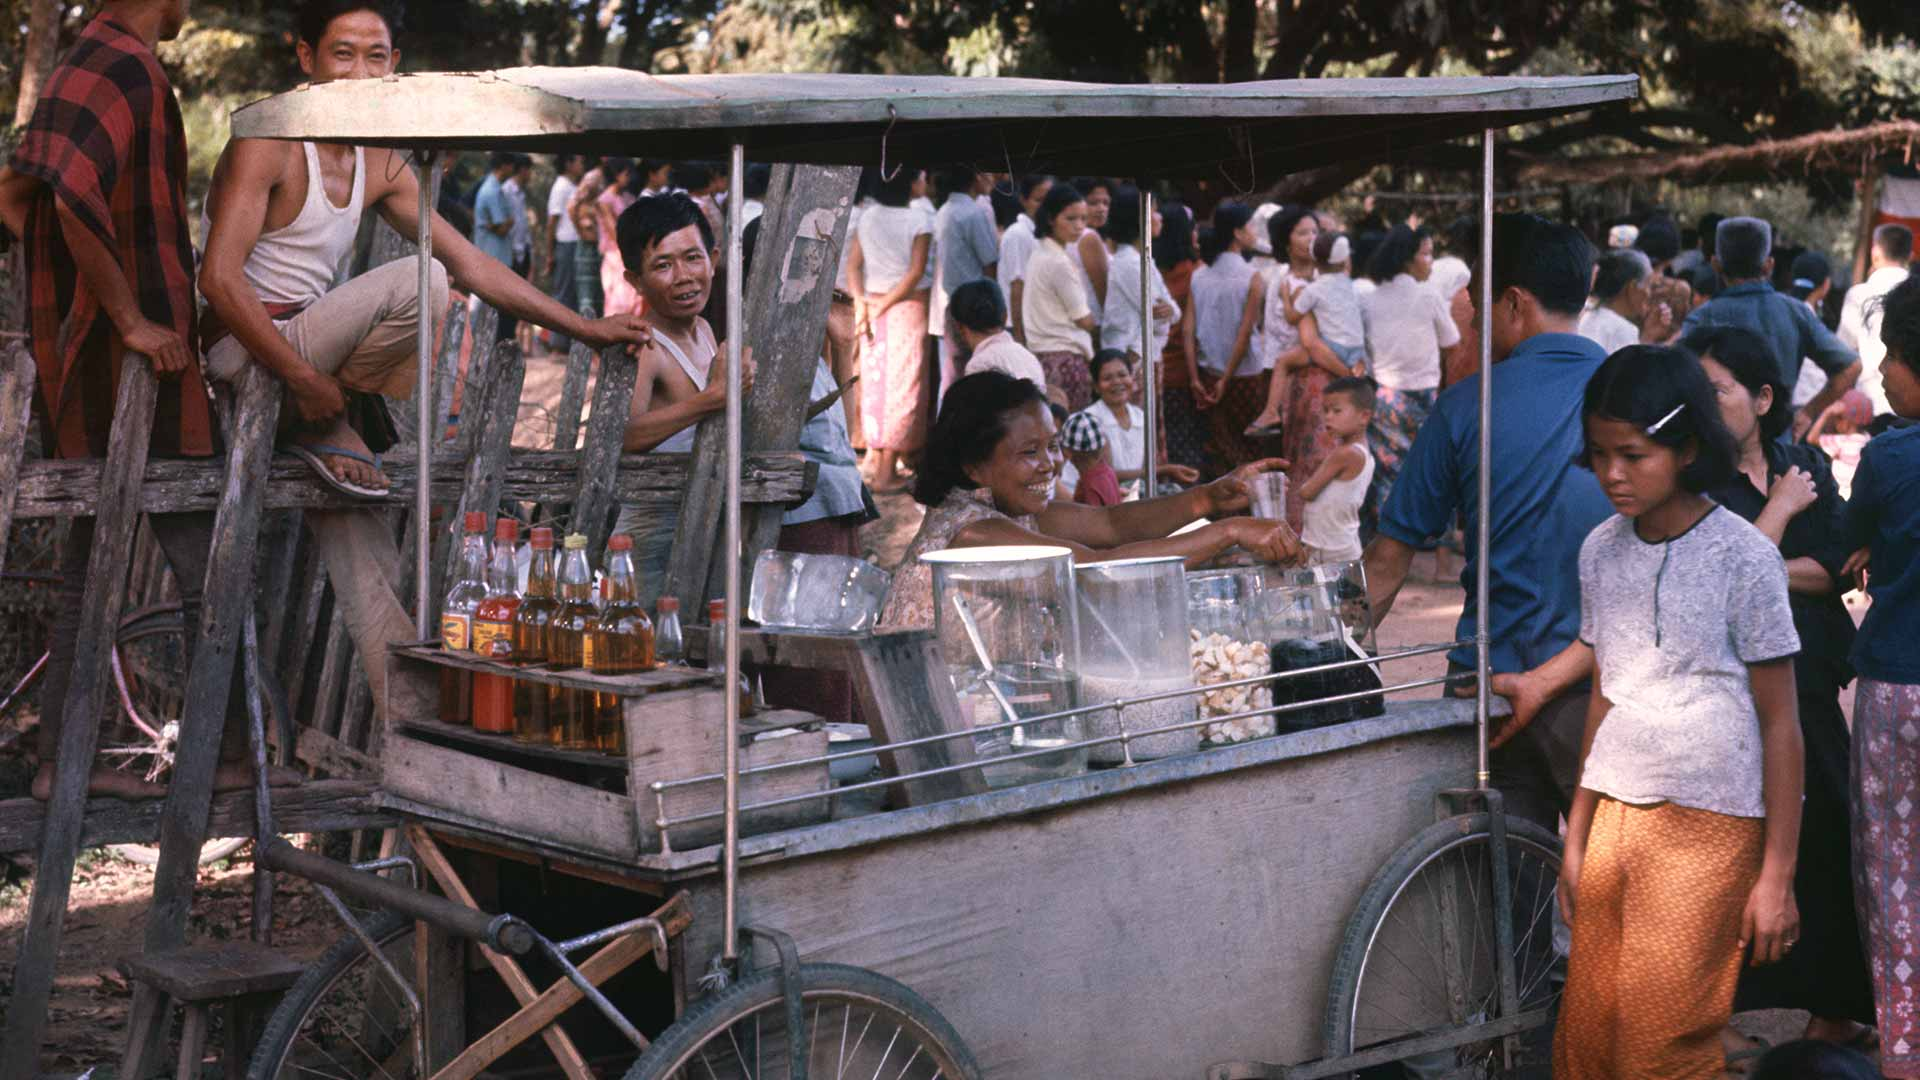 A food cart in a crowd of people